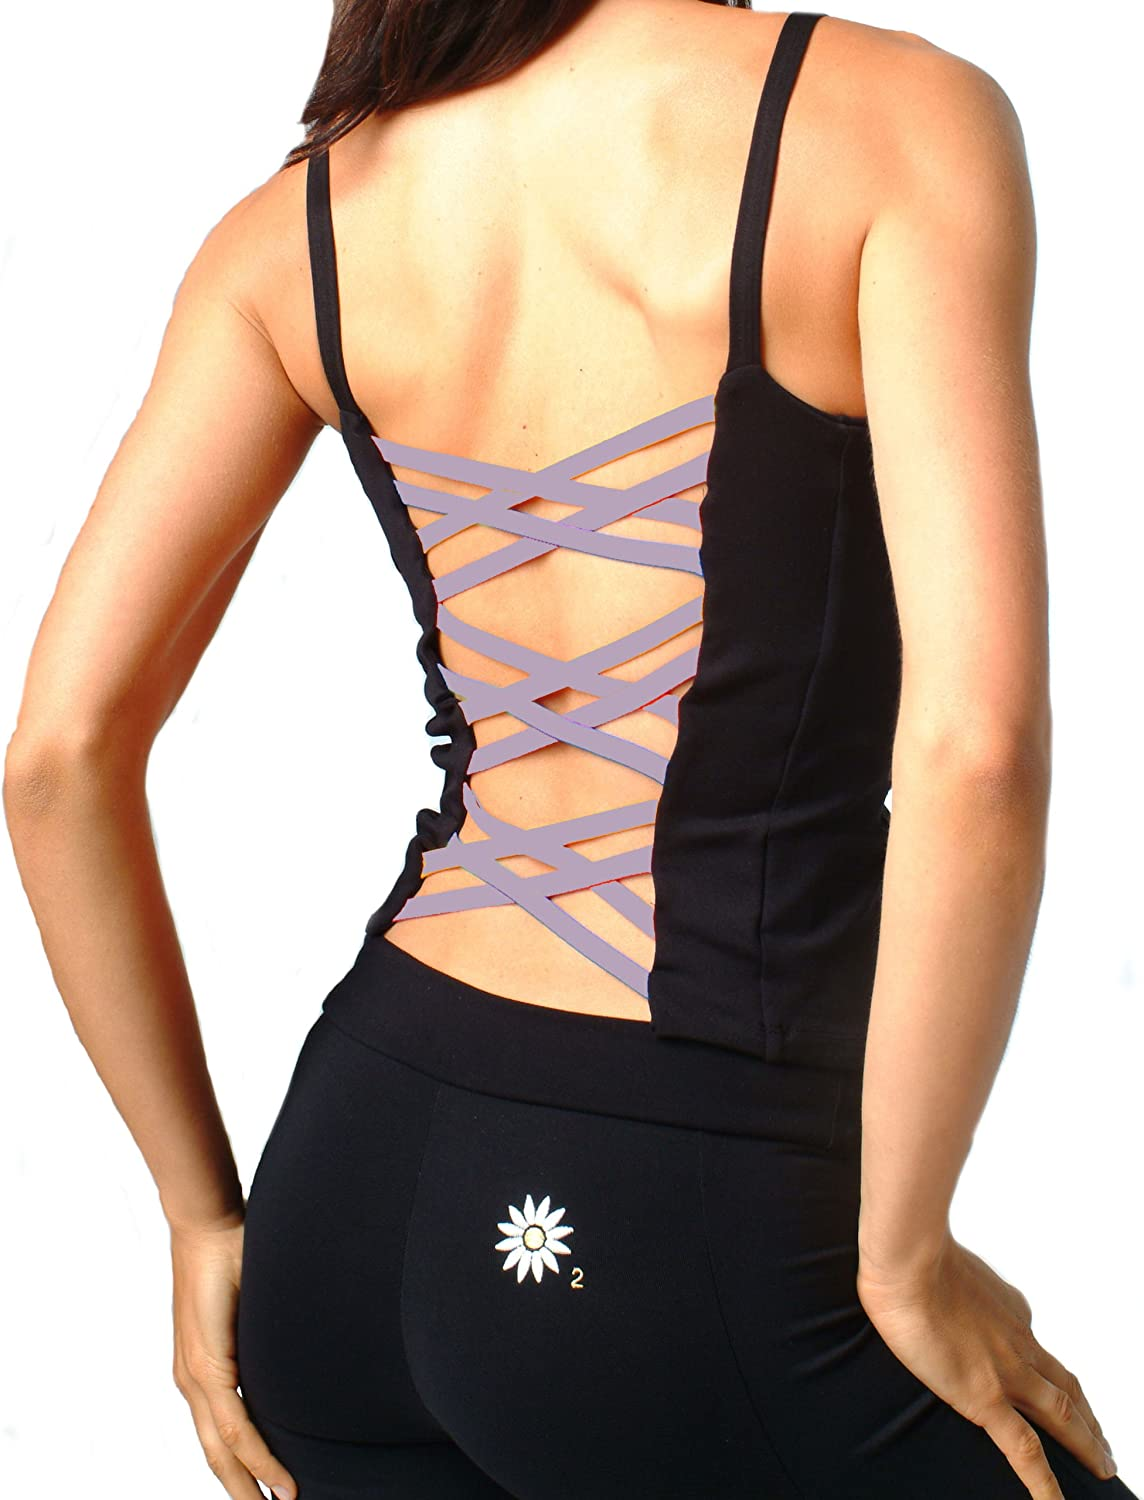 trust Margarita - Activewear Top Black with Online limited product O Purple-Ribbon Back